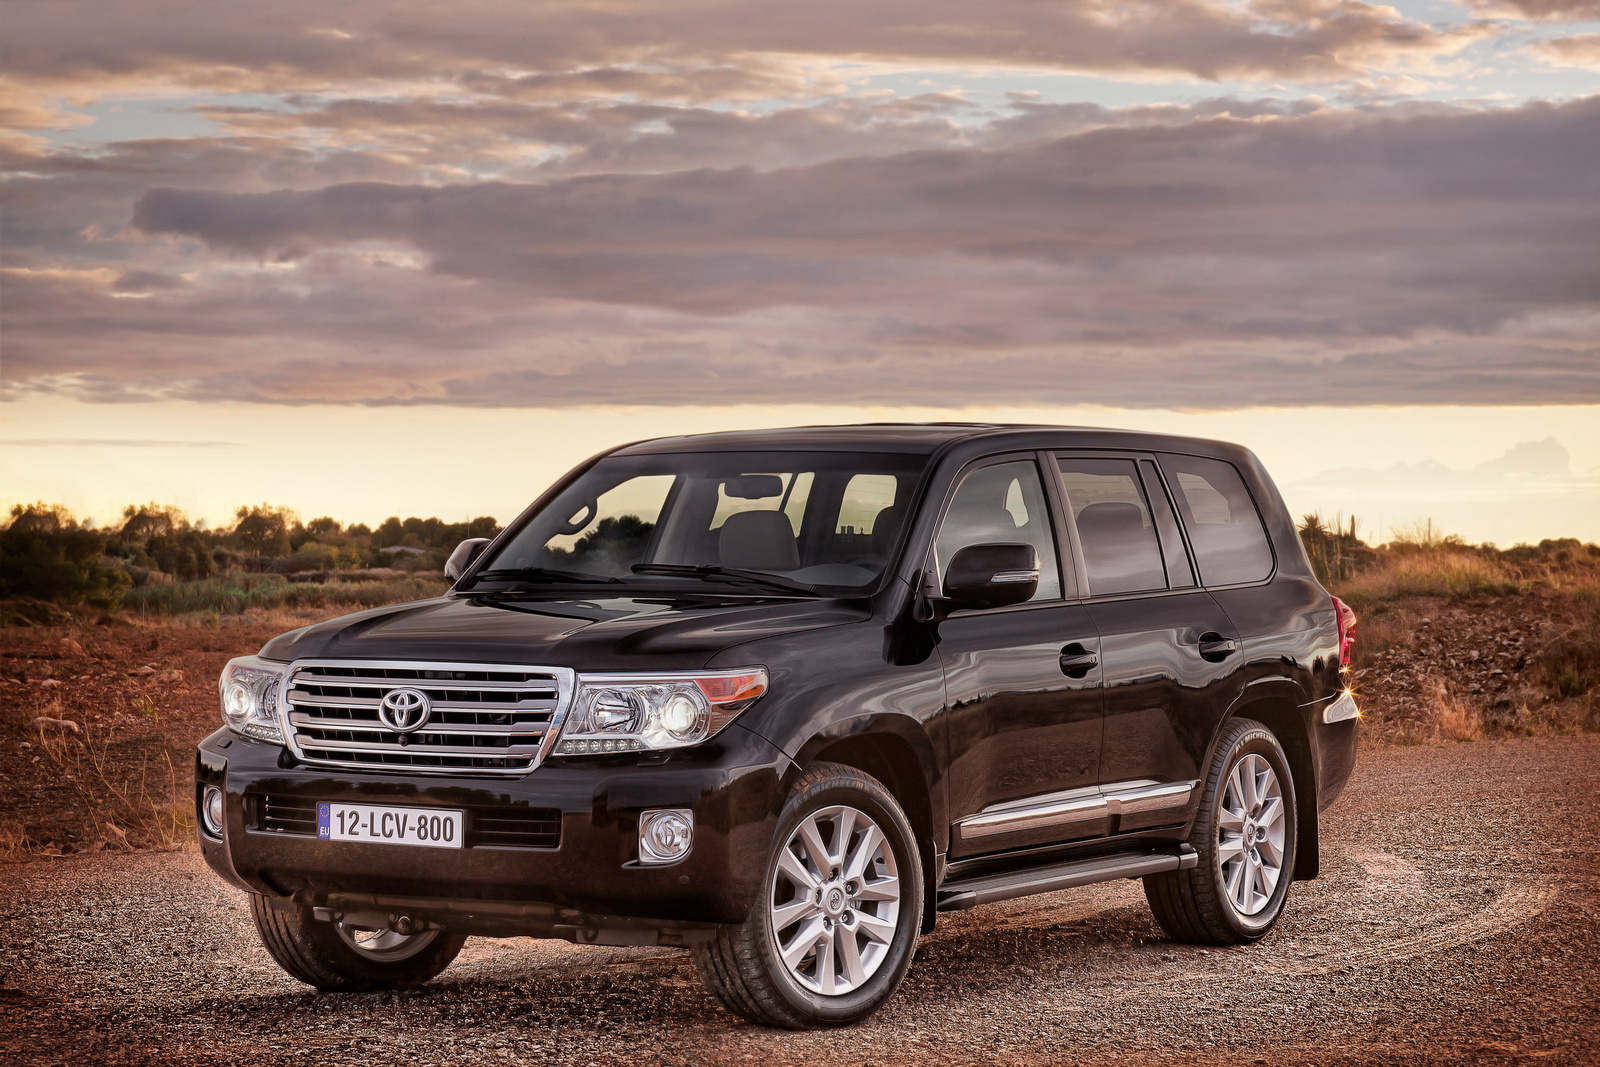 2013 toyota land cruiser review cargurus. Black Bedroom Furniture Sets. Home Design Ideas